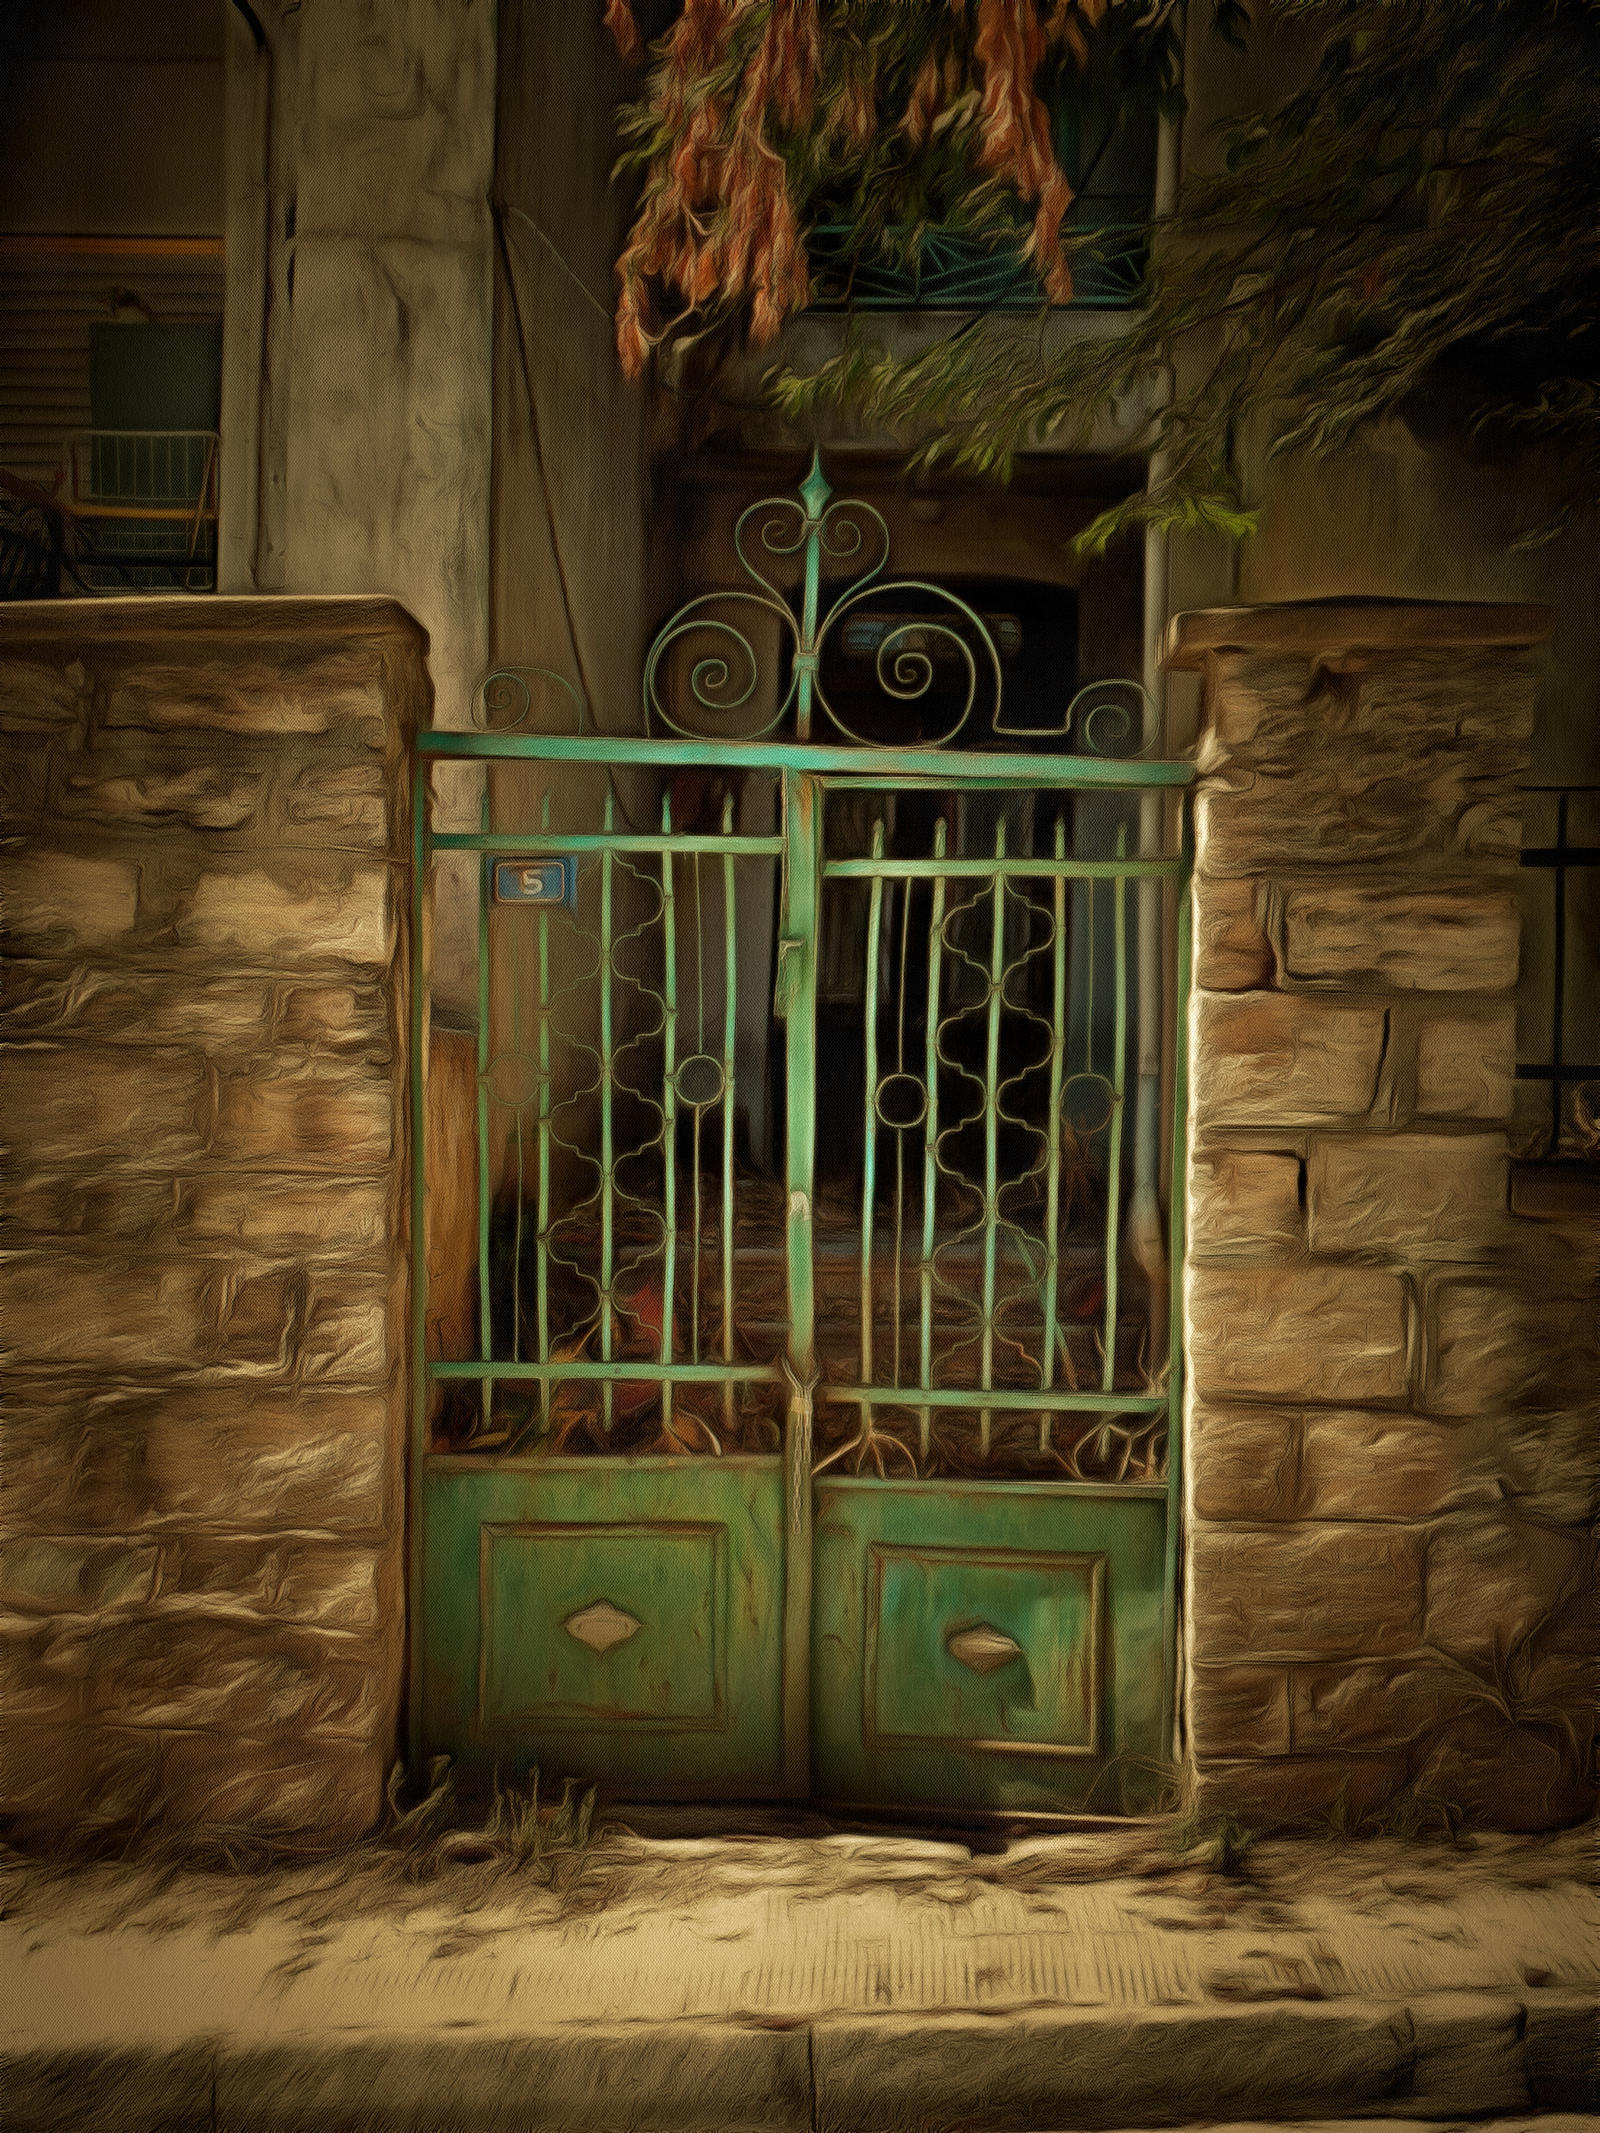 Old House Doors Art 2 by WishmasterG13